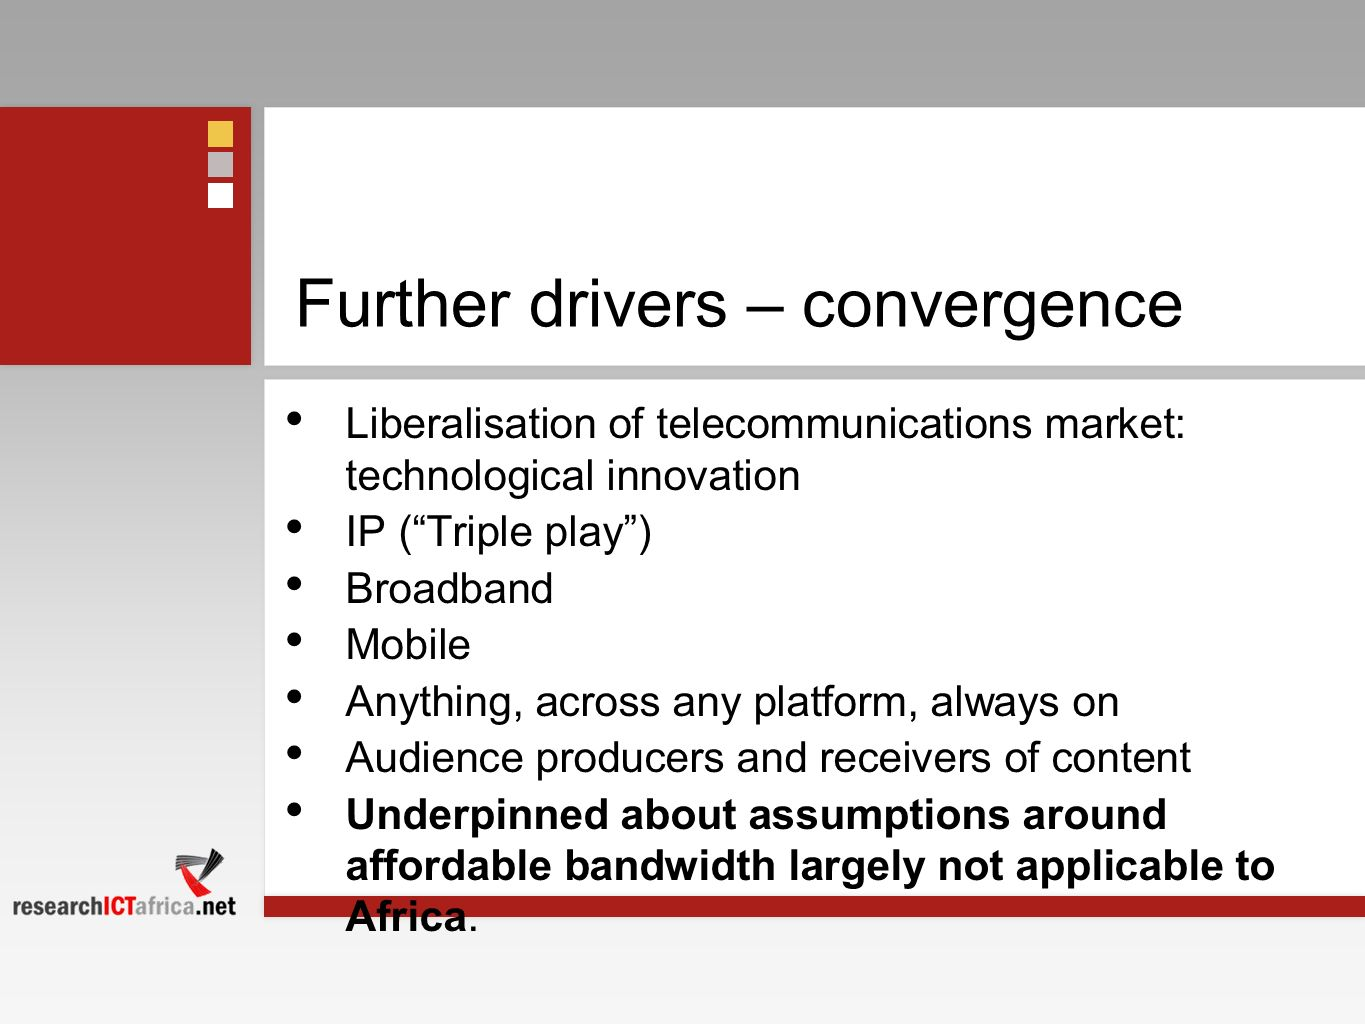 Further drivers – convergence Liberalisation of telecommunications market: technological innovation IP (Triple play) Broadband Mobile Anything, across any platform, always on Audience producers and receivers of content Underpinned about assumptions around affordable bandwidth largely not applicable to Africa.